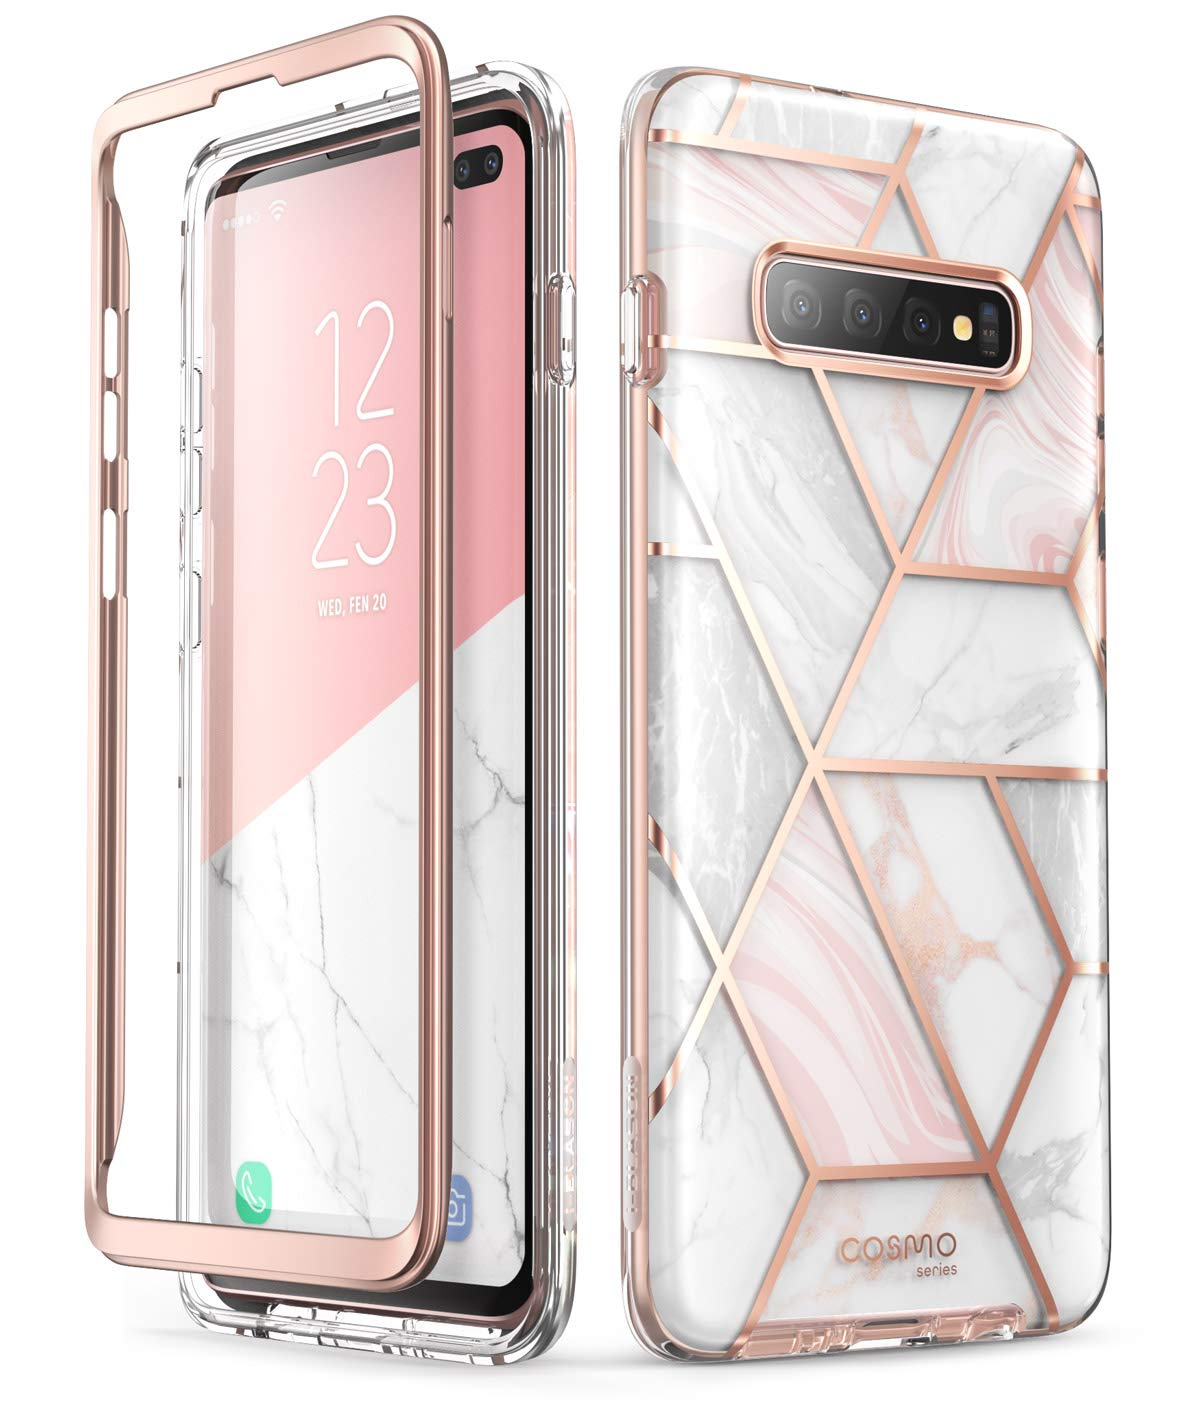 i-Blason Cosmo Series Designed for Galaxy S10 Plus Case Stylish Protective Bumper Case Without Built-in Screen Protector for Samsung Galaxy S10 Plus 2019 Release (Marble)